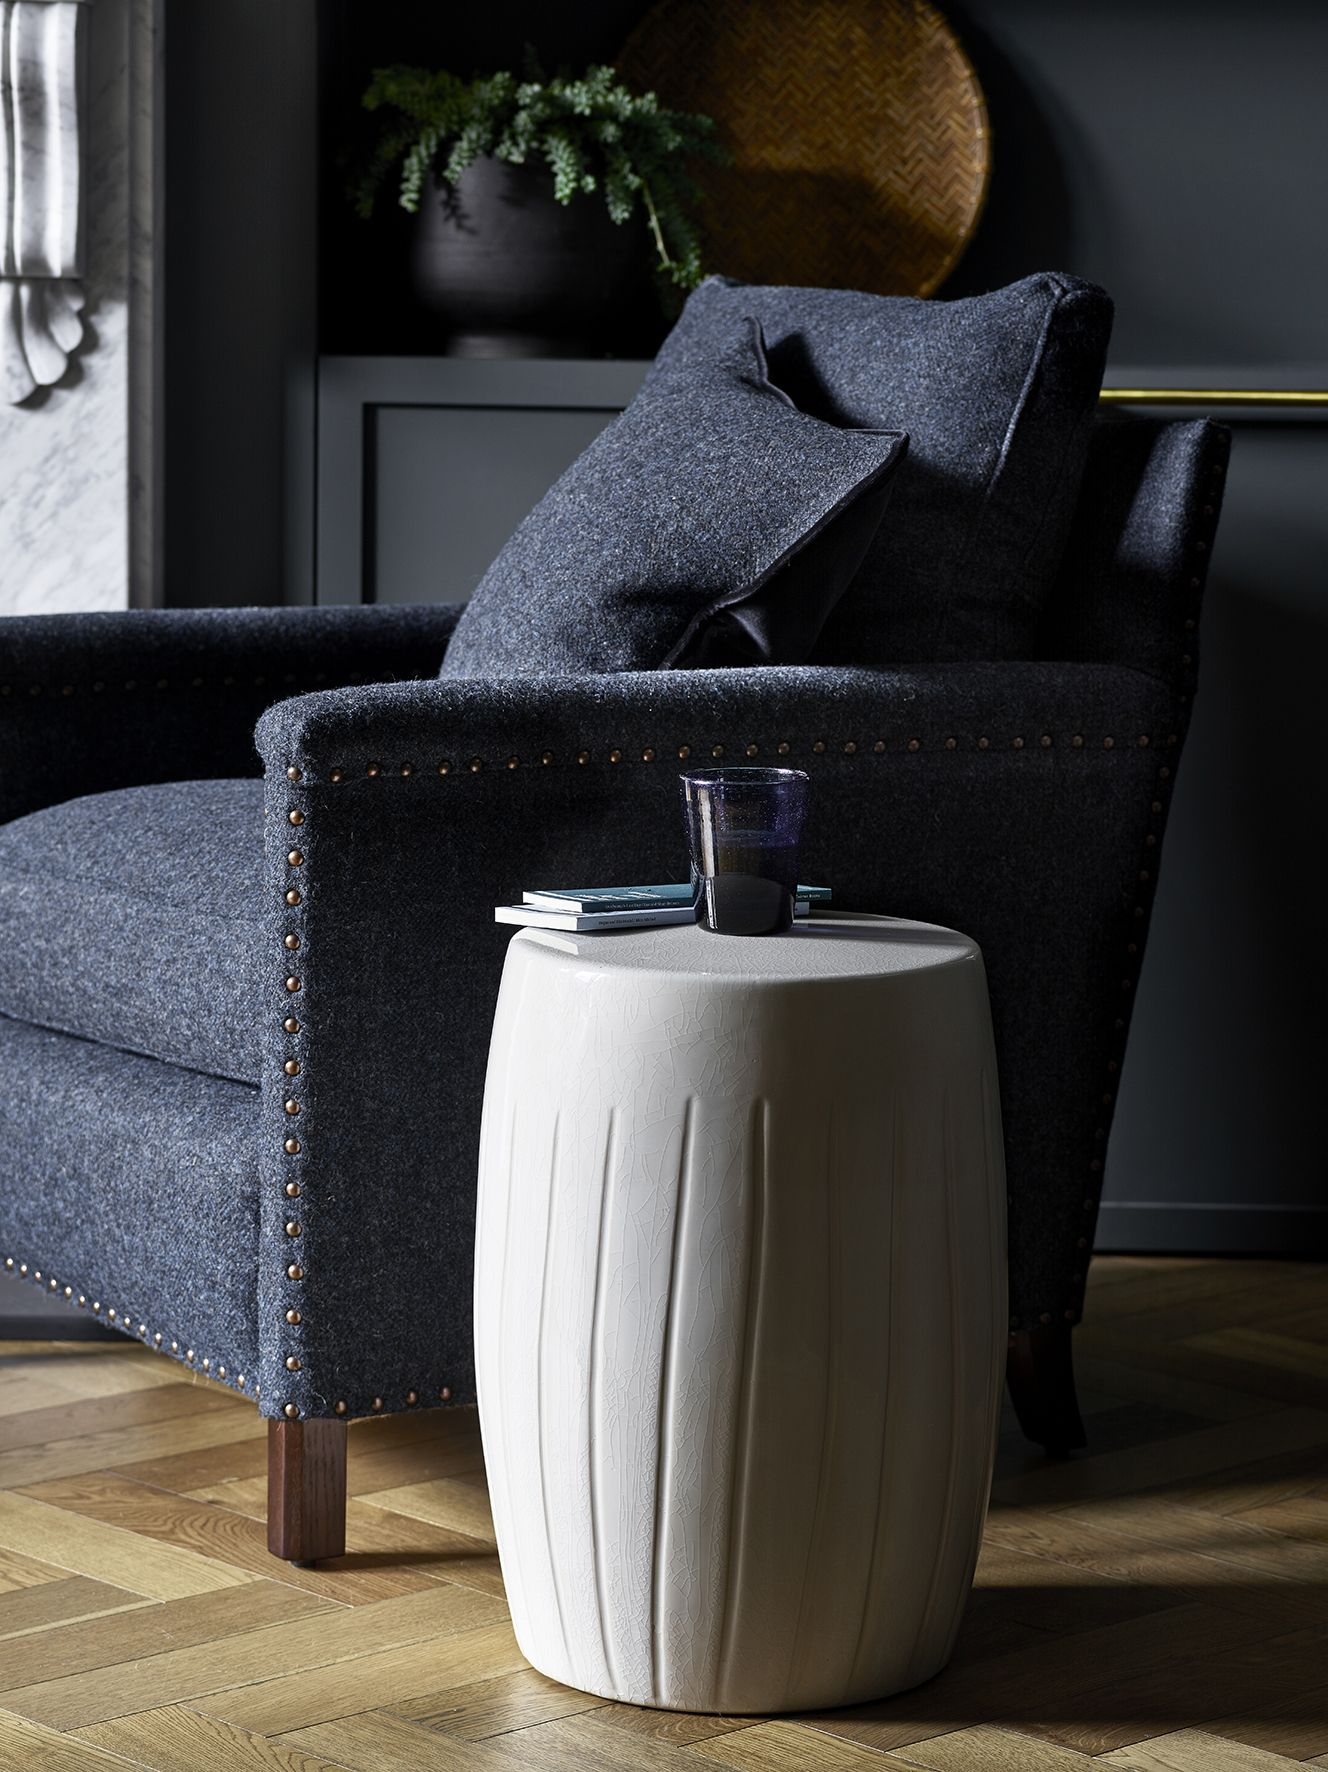 Beswick Ceramic Stool | Living Room Stools, Ceramic Stool Regarding Horsforth Garden Stools (View 23 of 25)